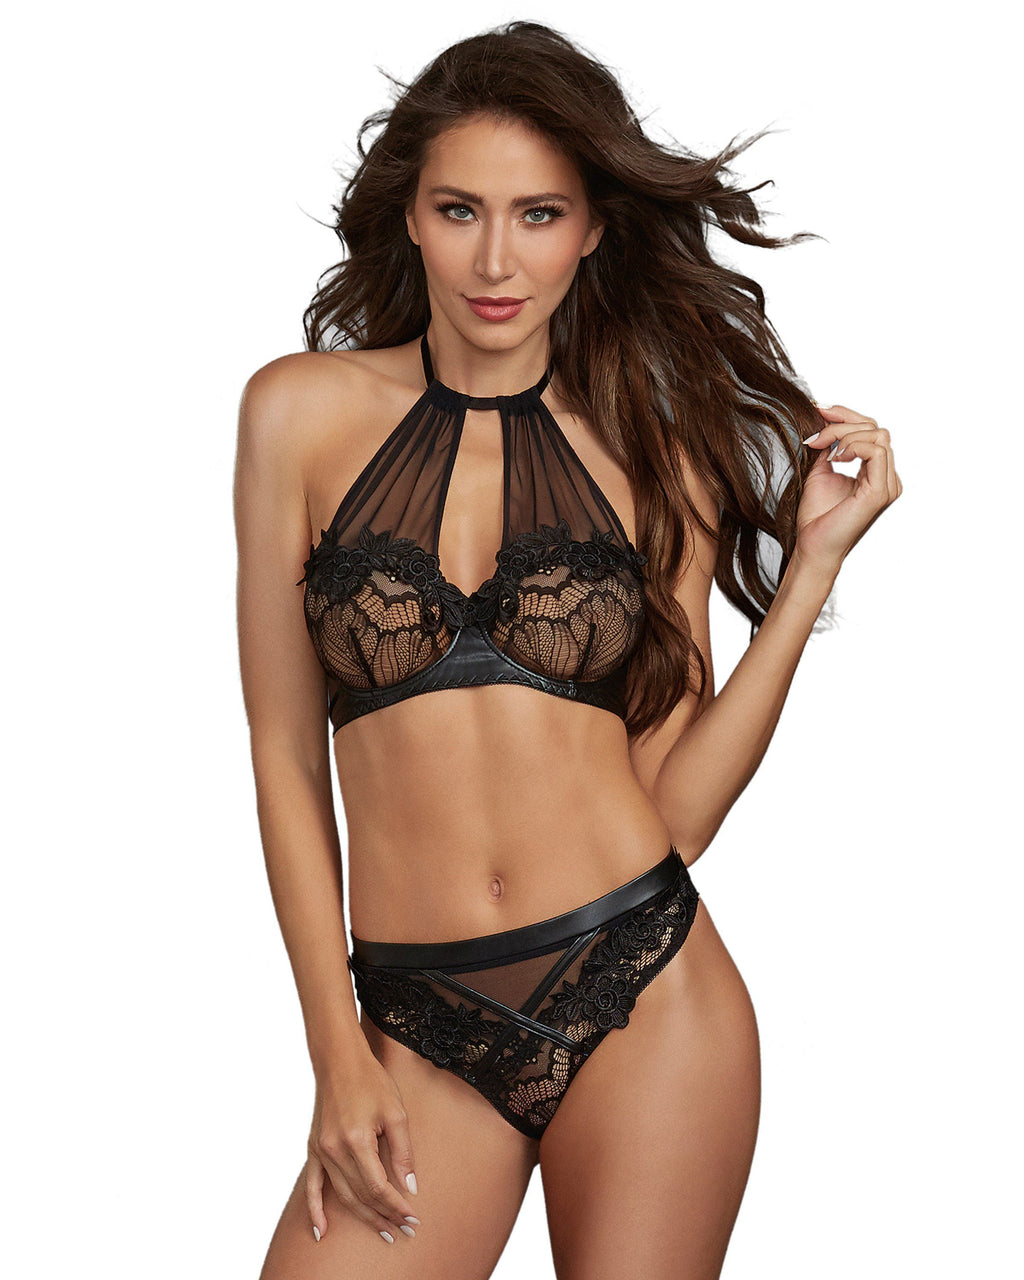 Stretch Lace and Sheer Mesh High Neck Underwire Bralette with Matching Thong Bralette Set Dreamgirl International